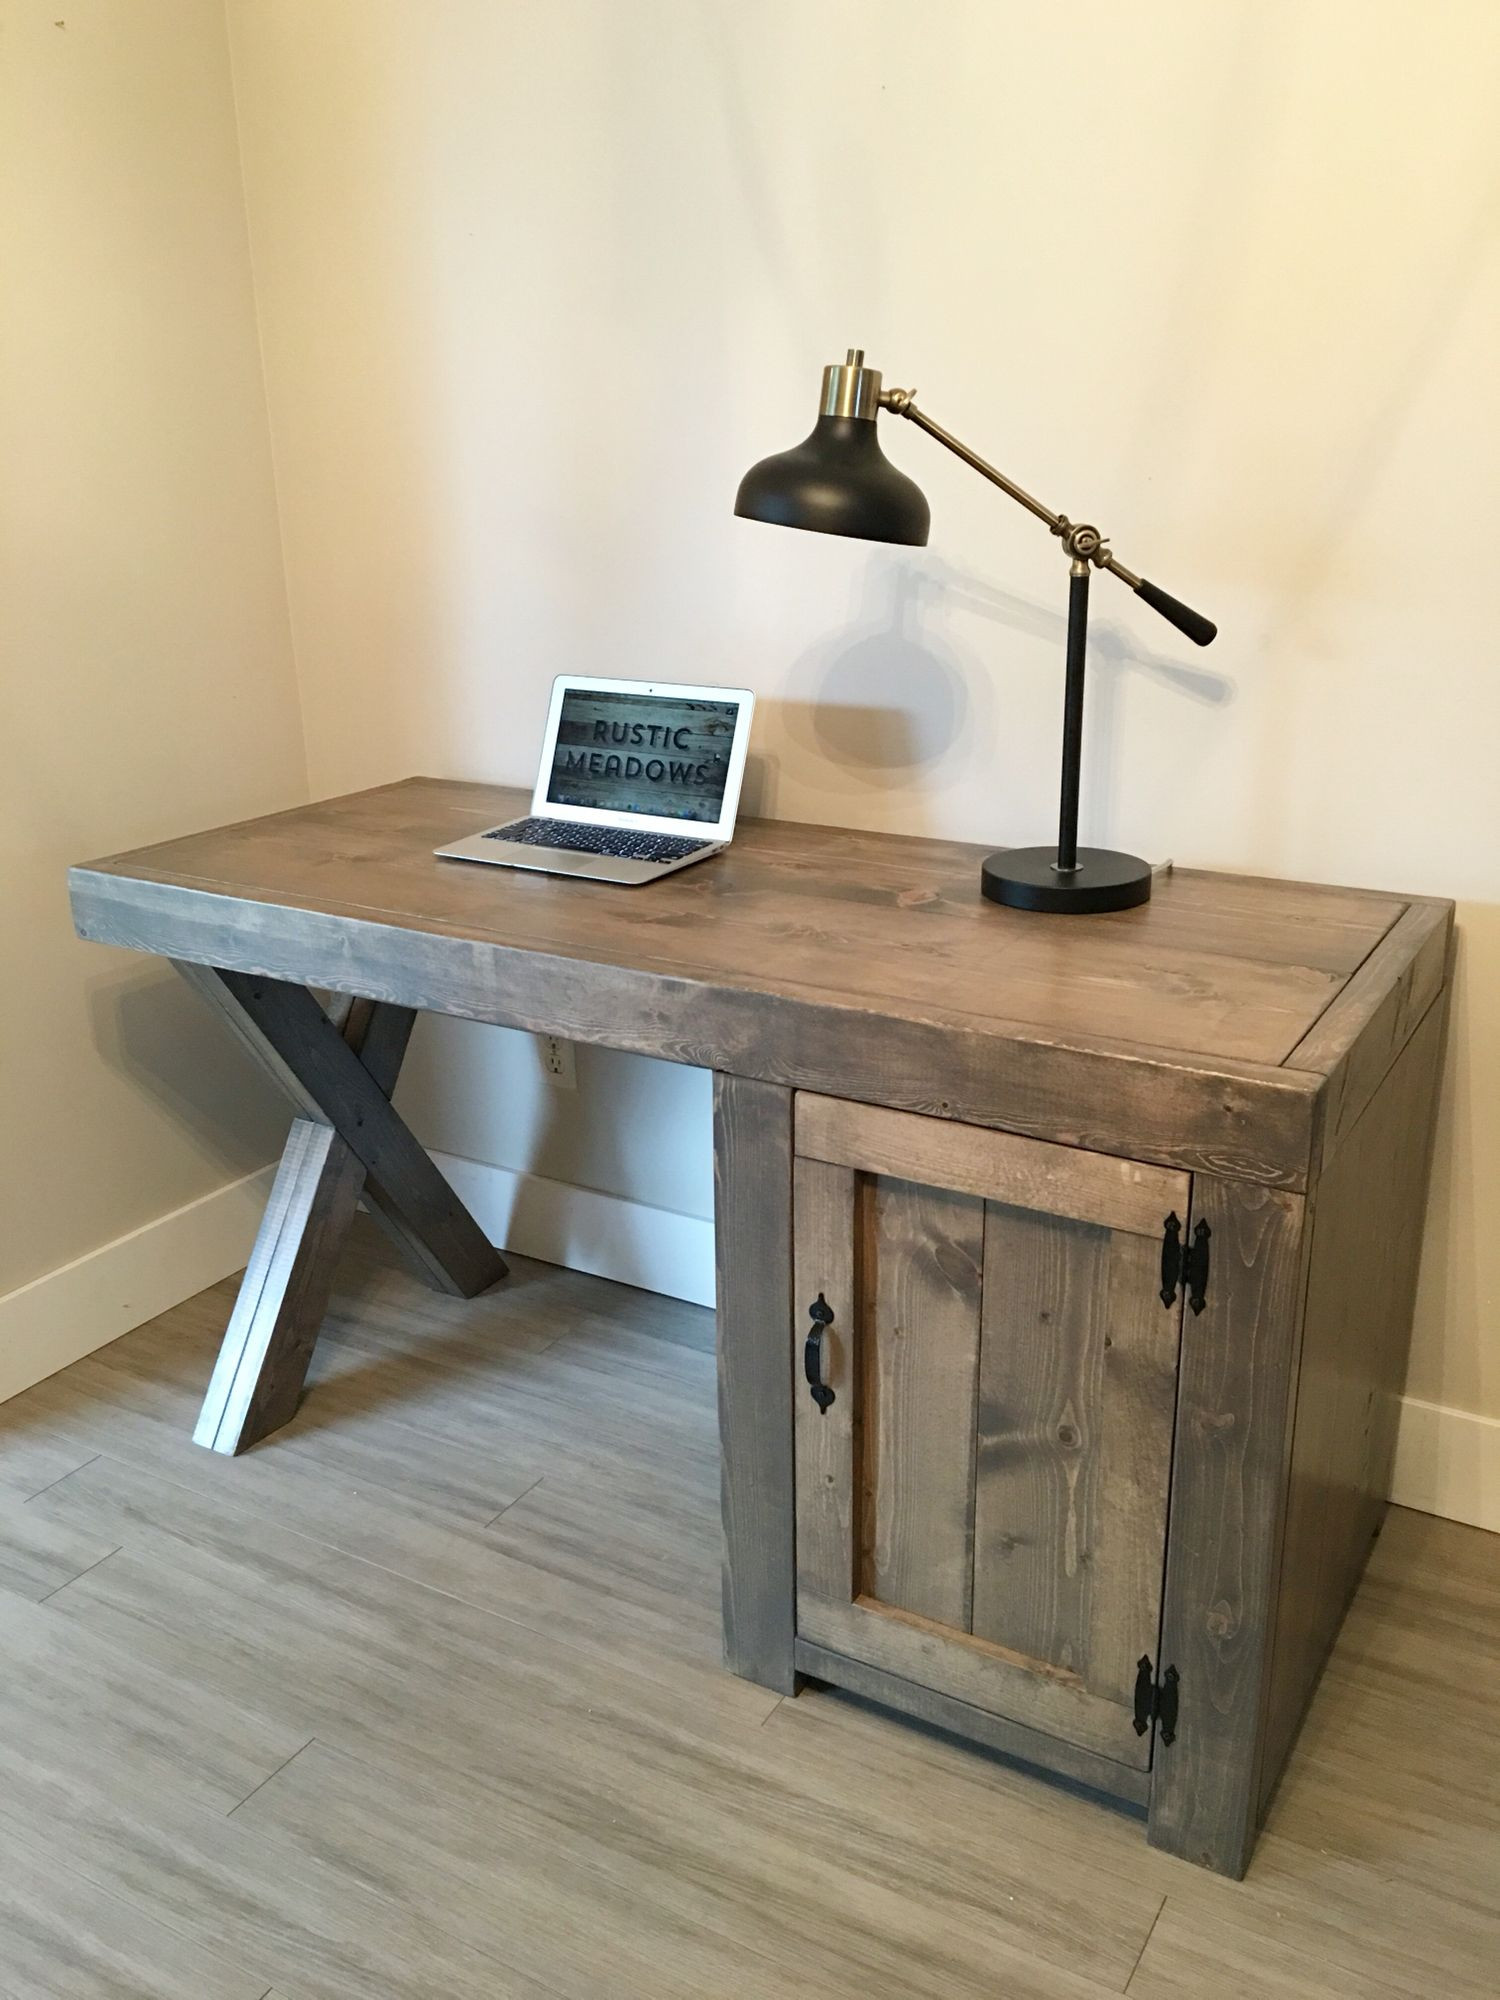 Best ideas about DIY Wooden Desks . Save or Pin 23 DIY puter Desk Ideas That Make More Spirit Work Now.